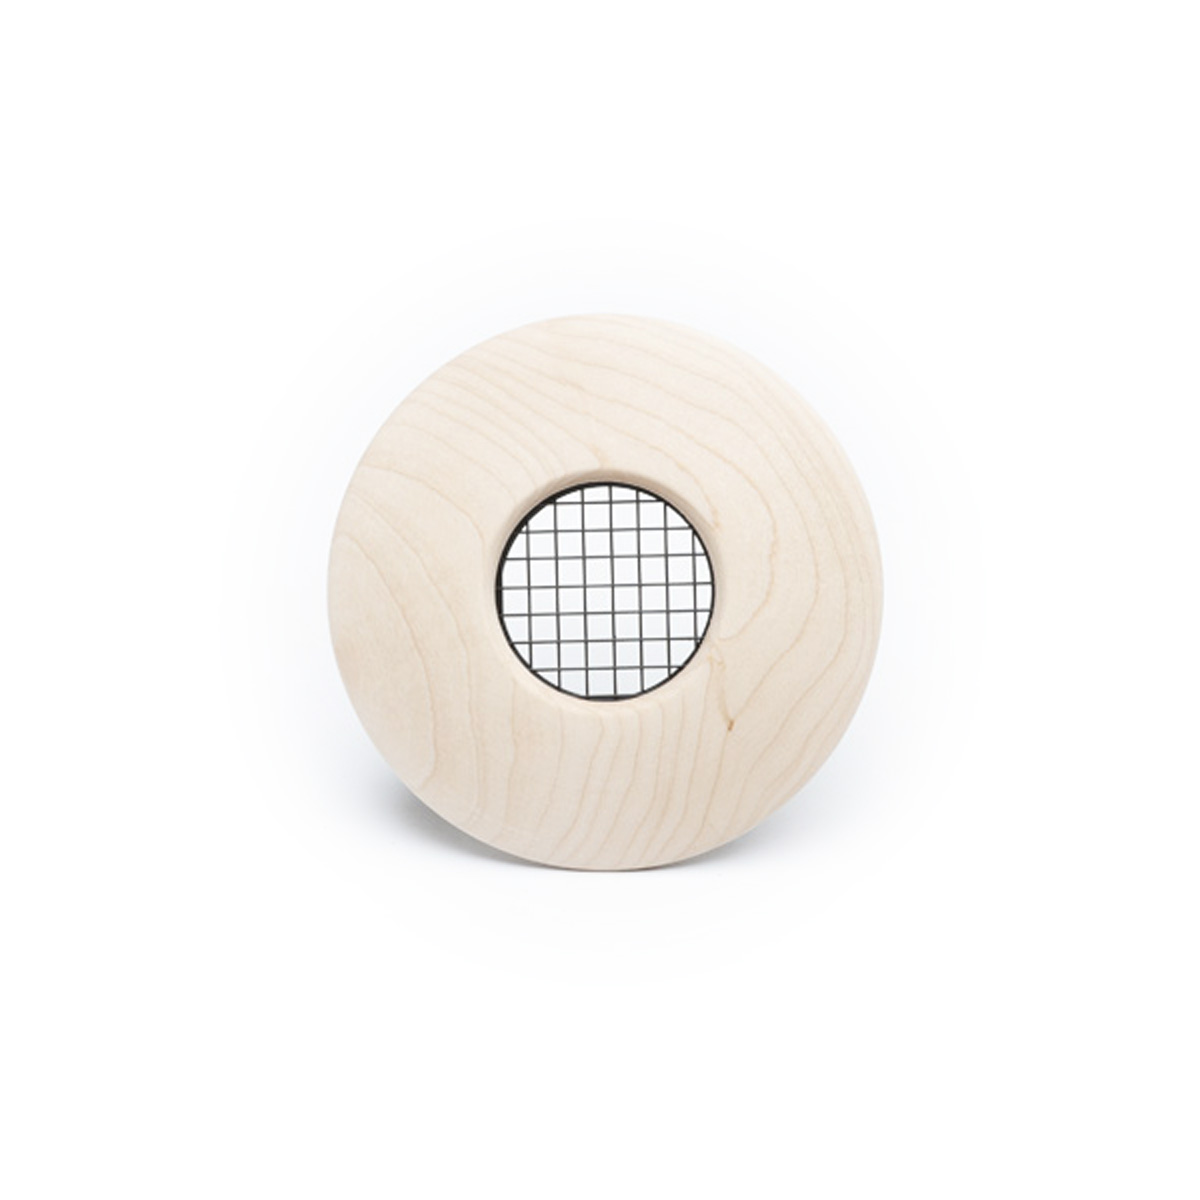 "Round Supply Outlet, 2"", Maple wood, TFS, 1/bx"